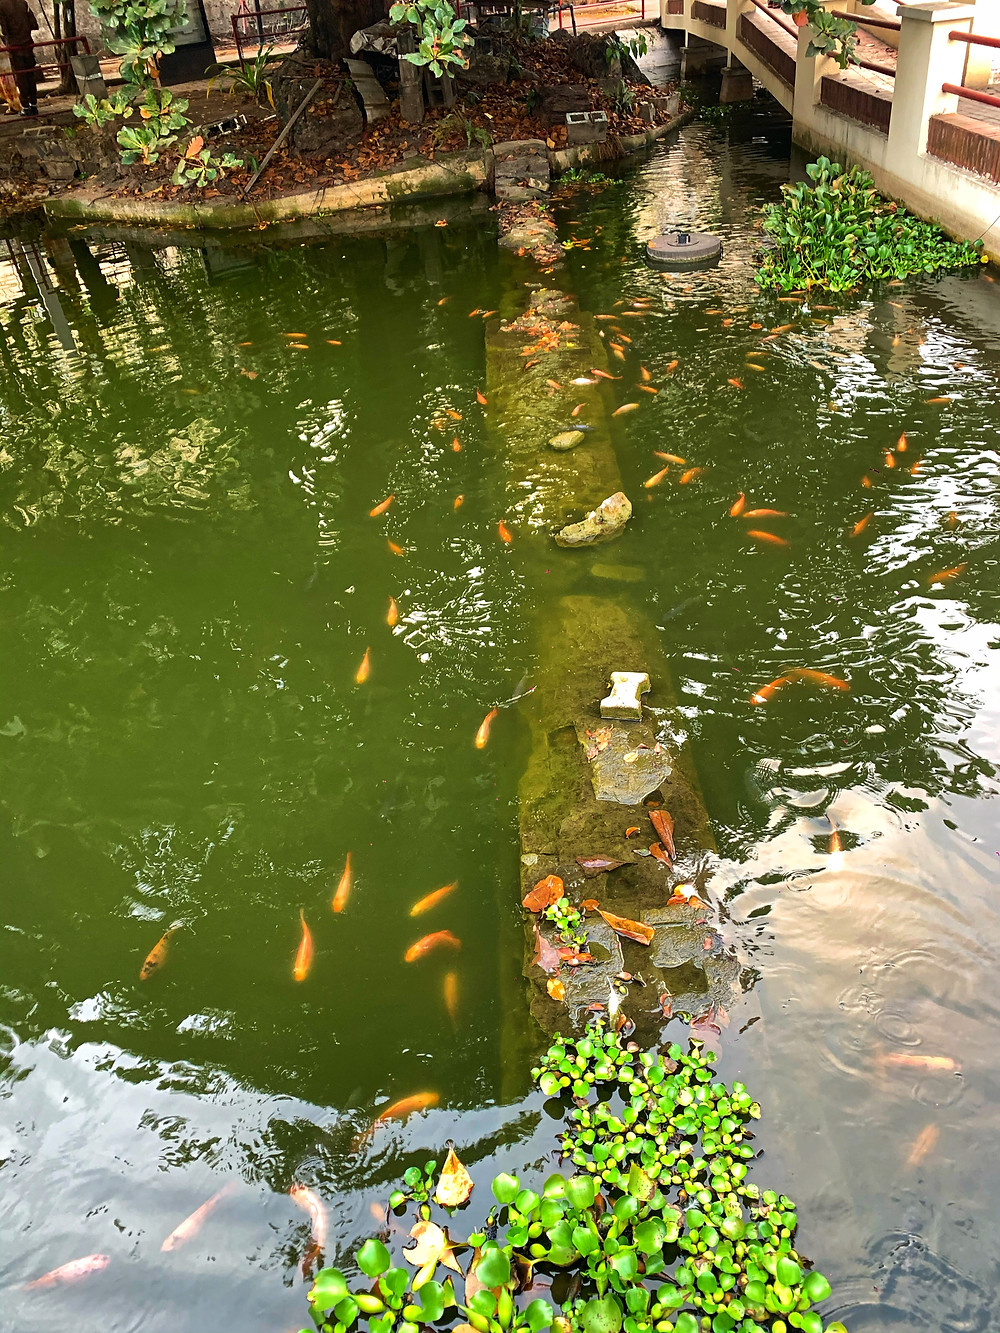 The Freedom park pond that is home to pink tilapia and koi fish